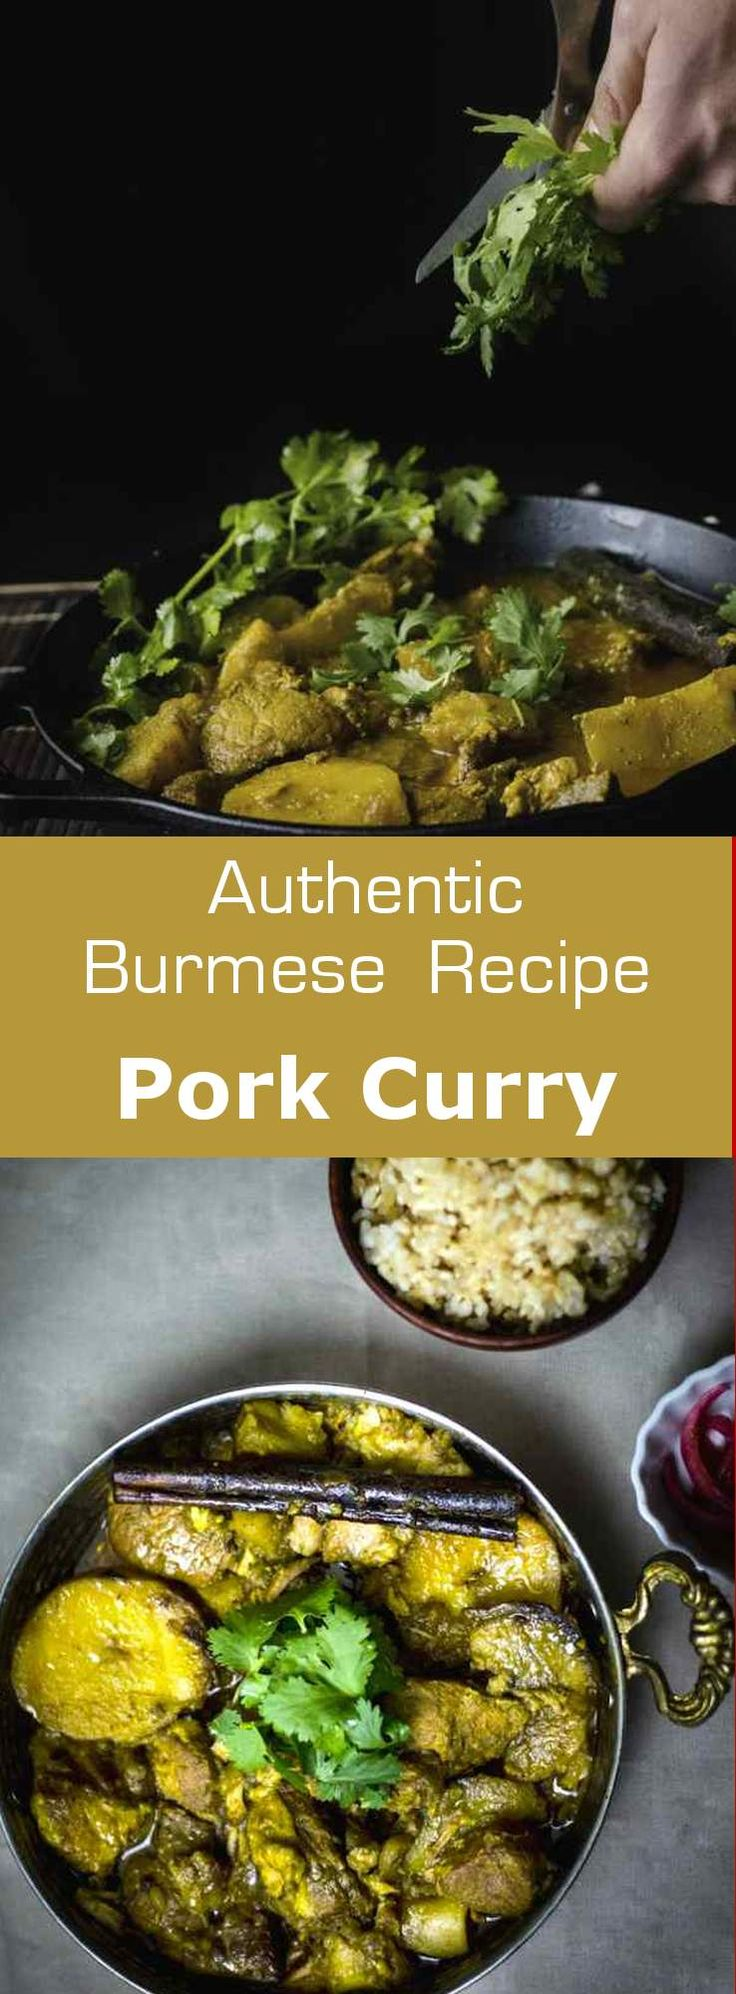 Best 301 burmese cuisine images on pinterest cooking food burmese pork curry is a luxurious burmese dish that is typically served with rice and sour salads asian food recipesasian forumfinder Images